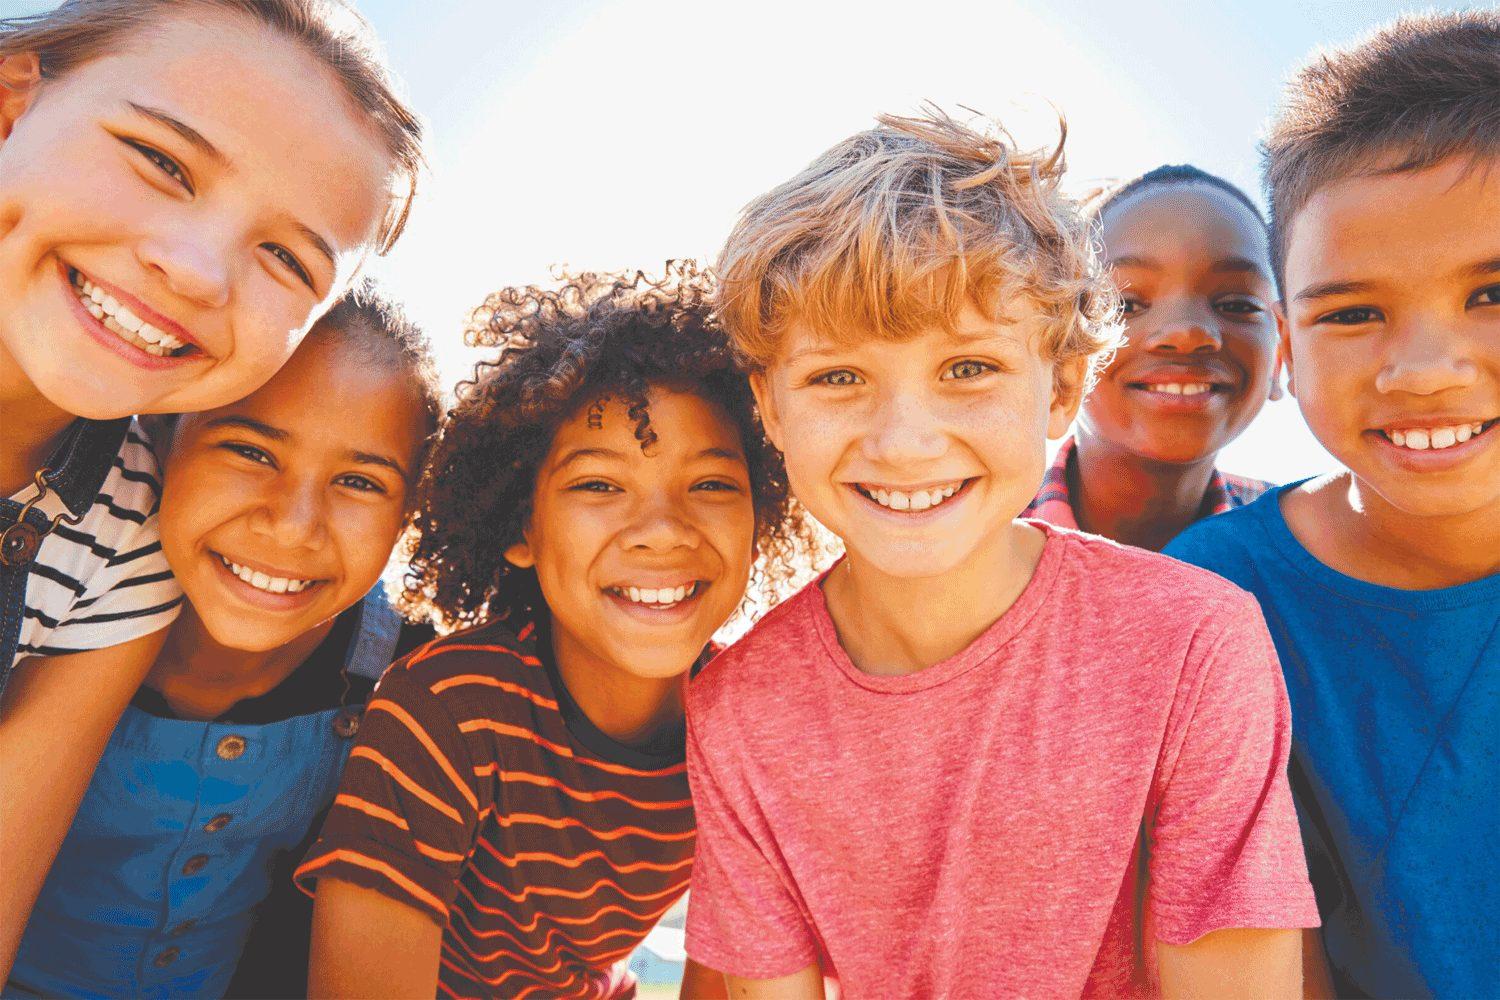 Photo of smiling kids